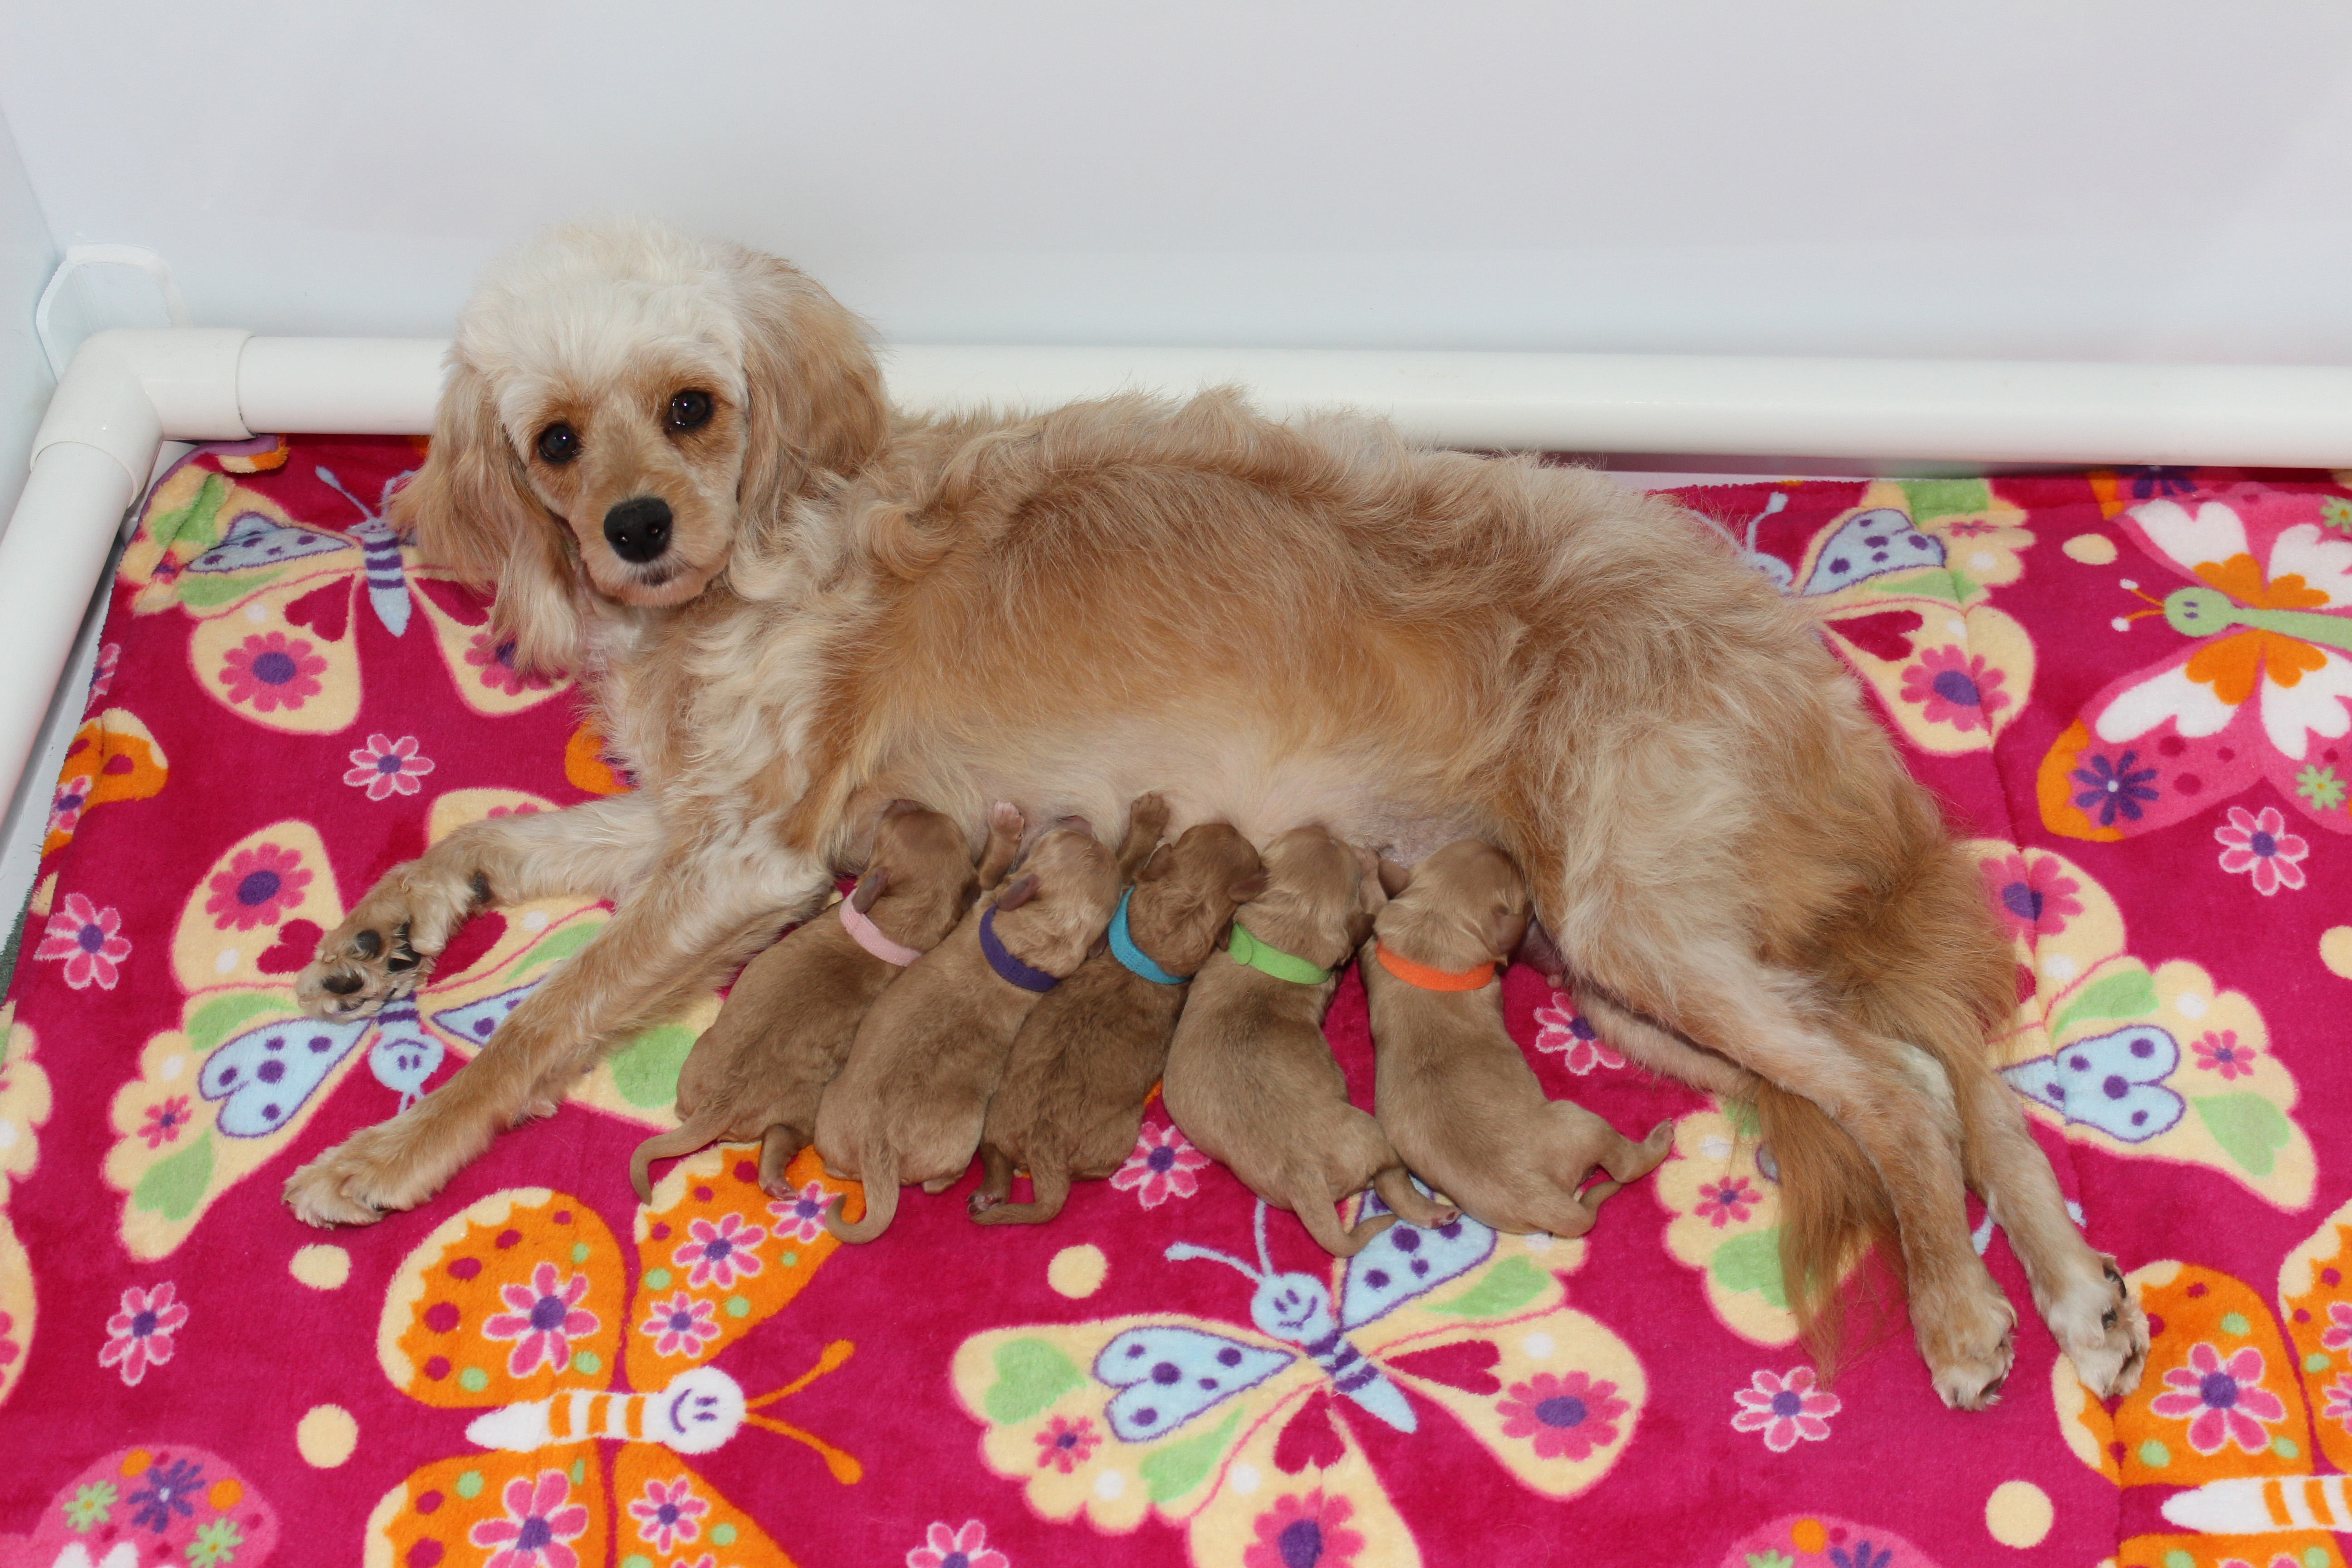 Daphne and Trenton's 2018 litter